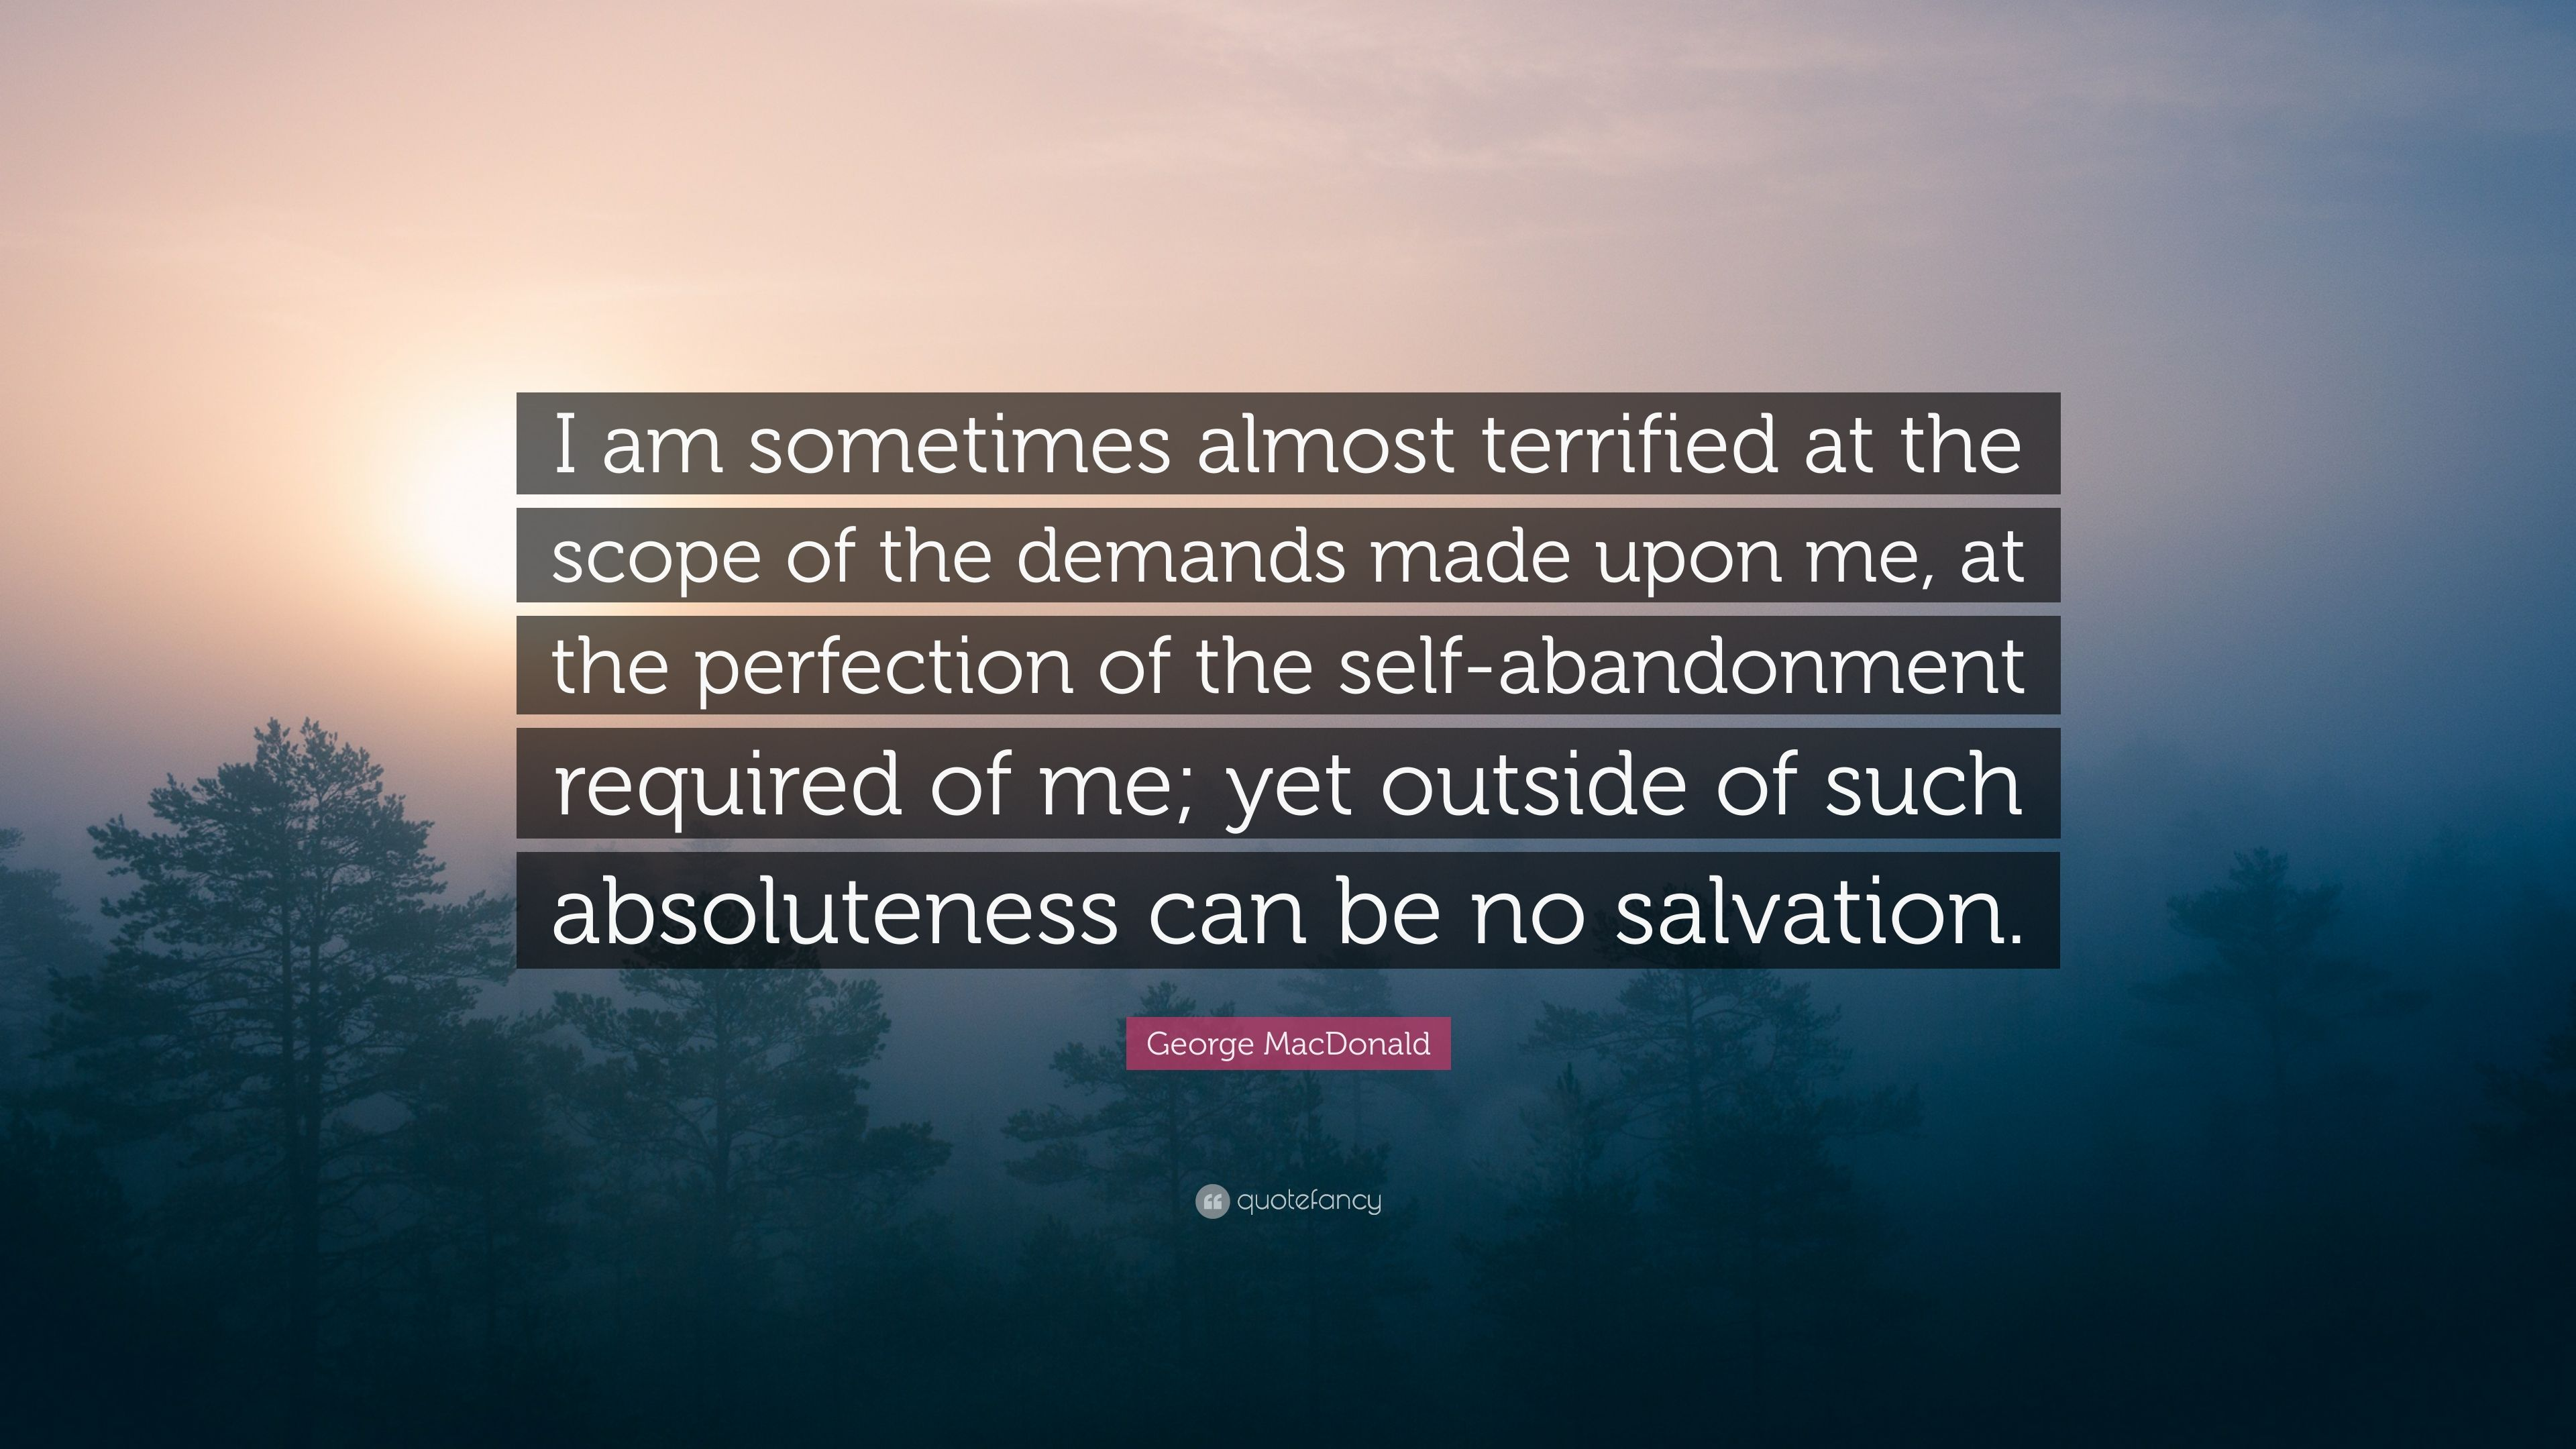 George Macdonald Quote I Am Sometimes Almost Terrified At The Scope Of The Demands Made Upon Me At The Perfection Of The Self Abandonment Requ 6 Wallpapers Quotefancy